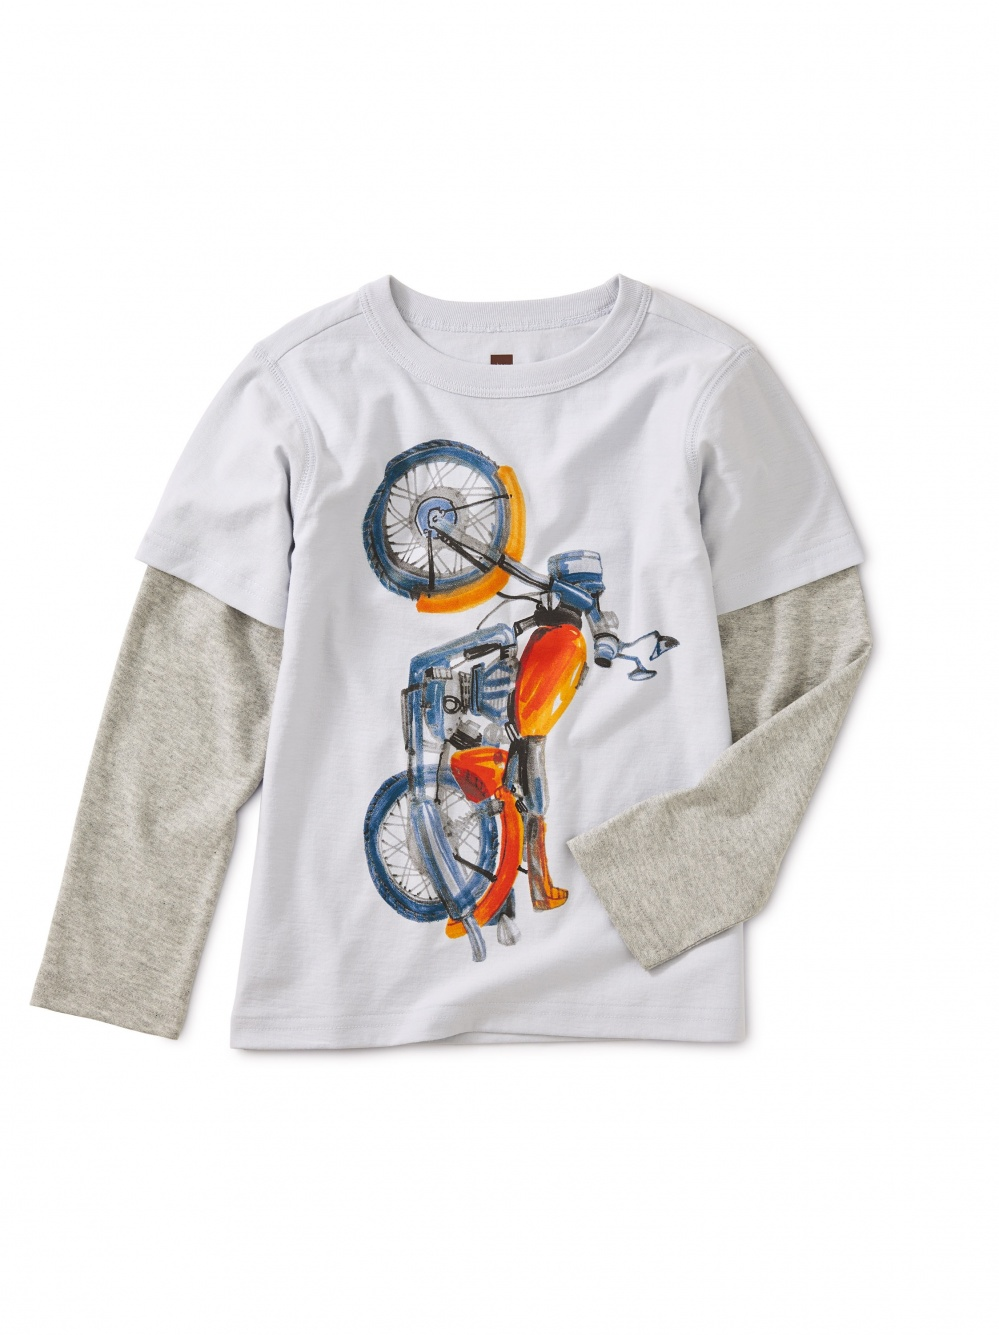 Vertical Moto Graphic Layered Tee